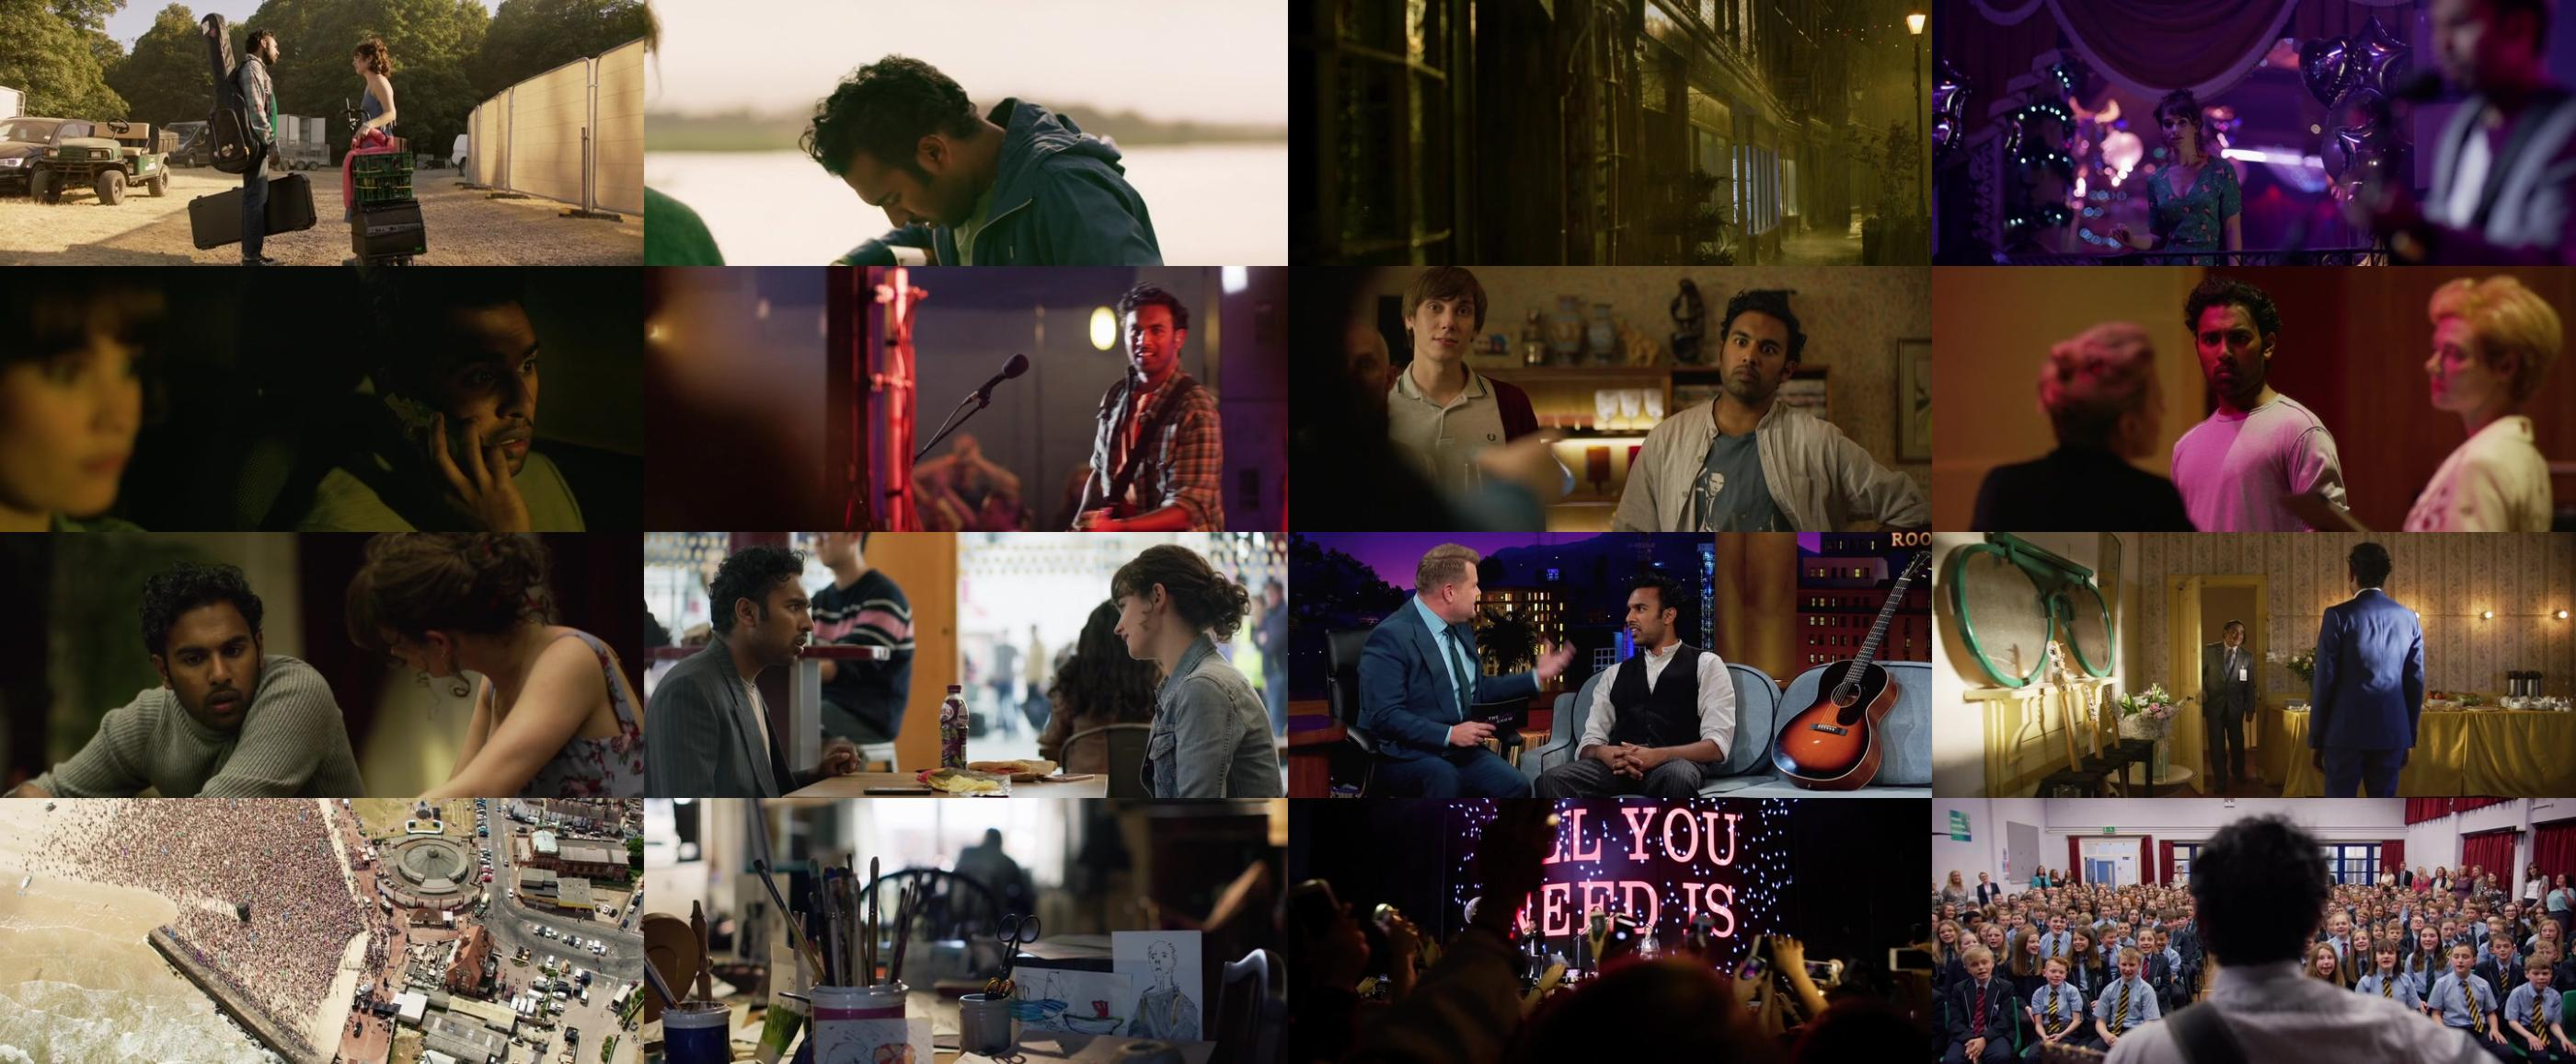 Yesterday 2019 WEB DL x264 FGT